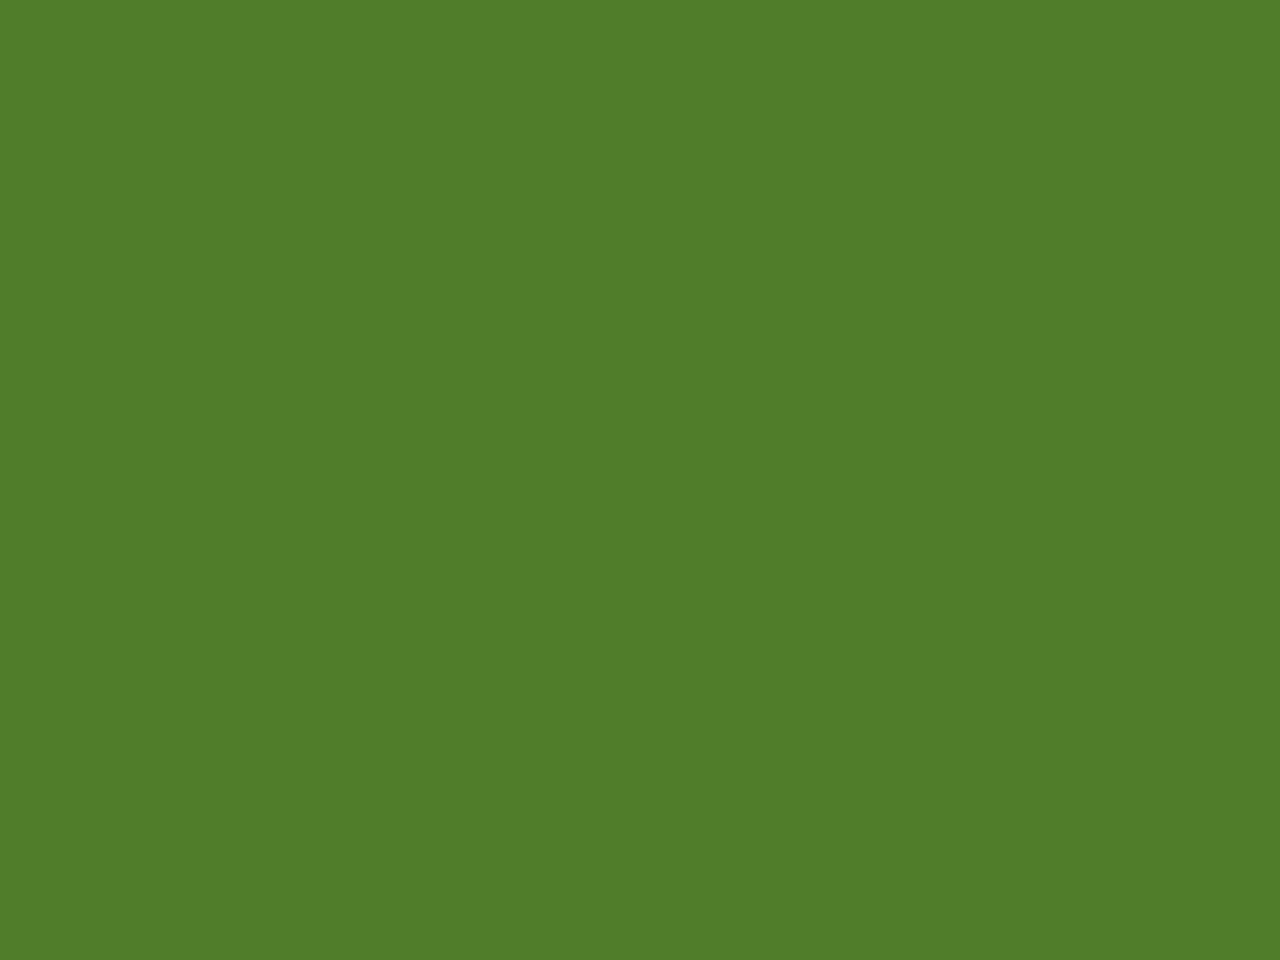 1280x960 Sap Green Solid Color Background